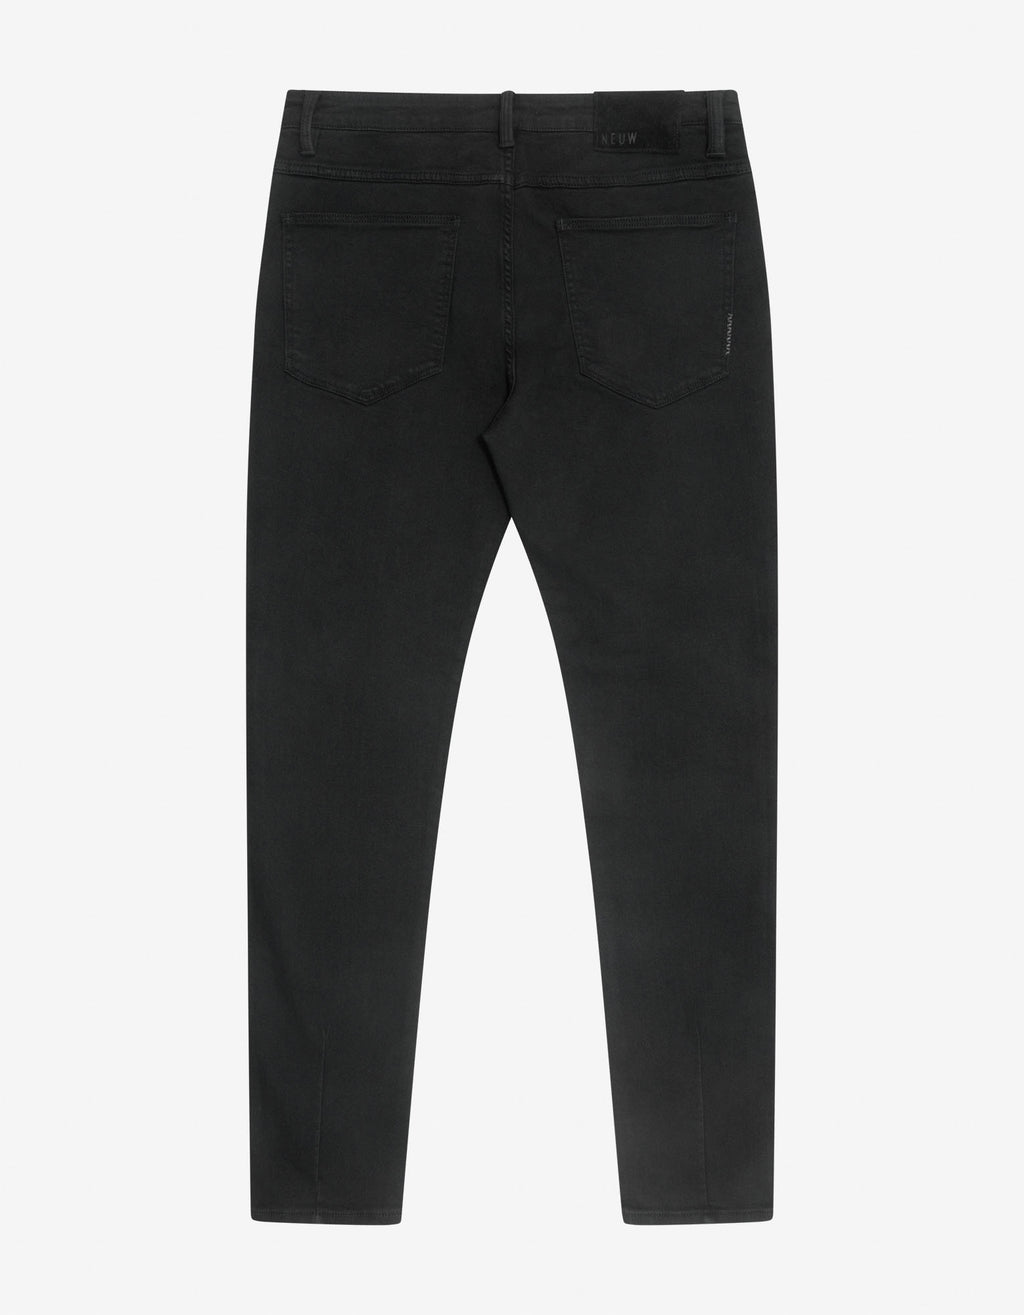 Rebel Skinny Eternal Black Jeans